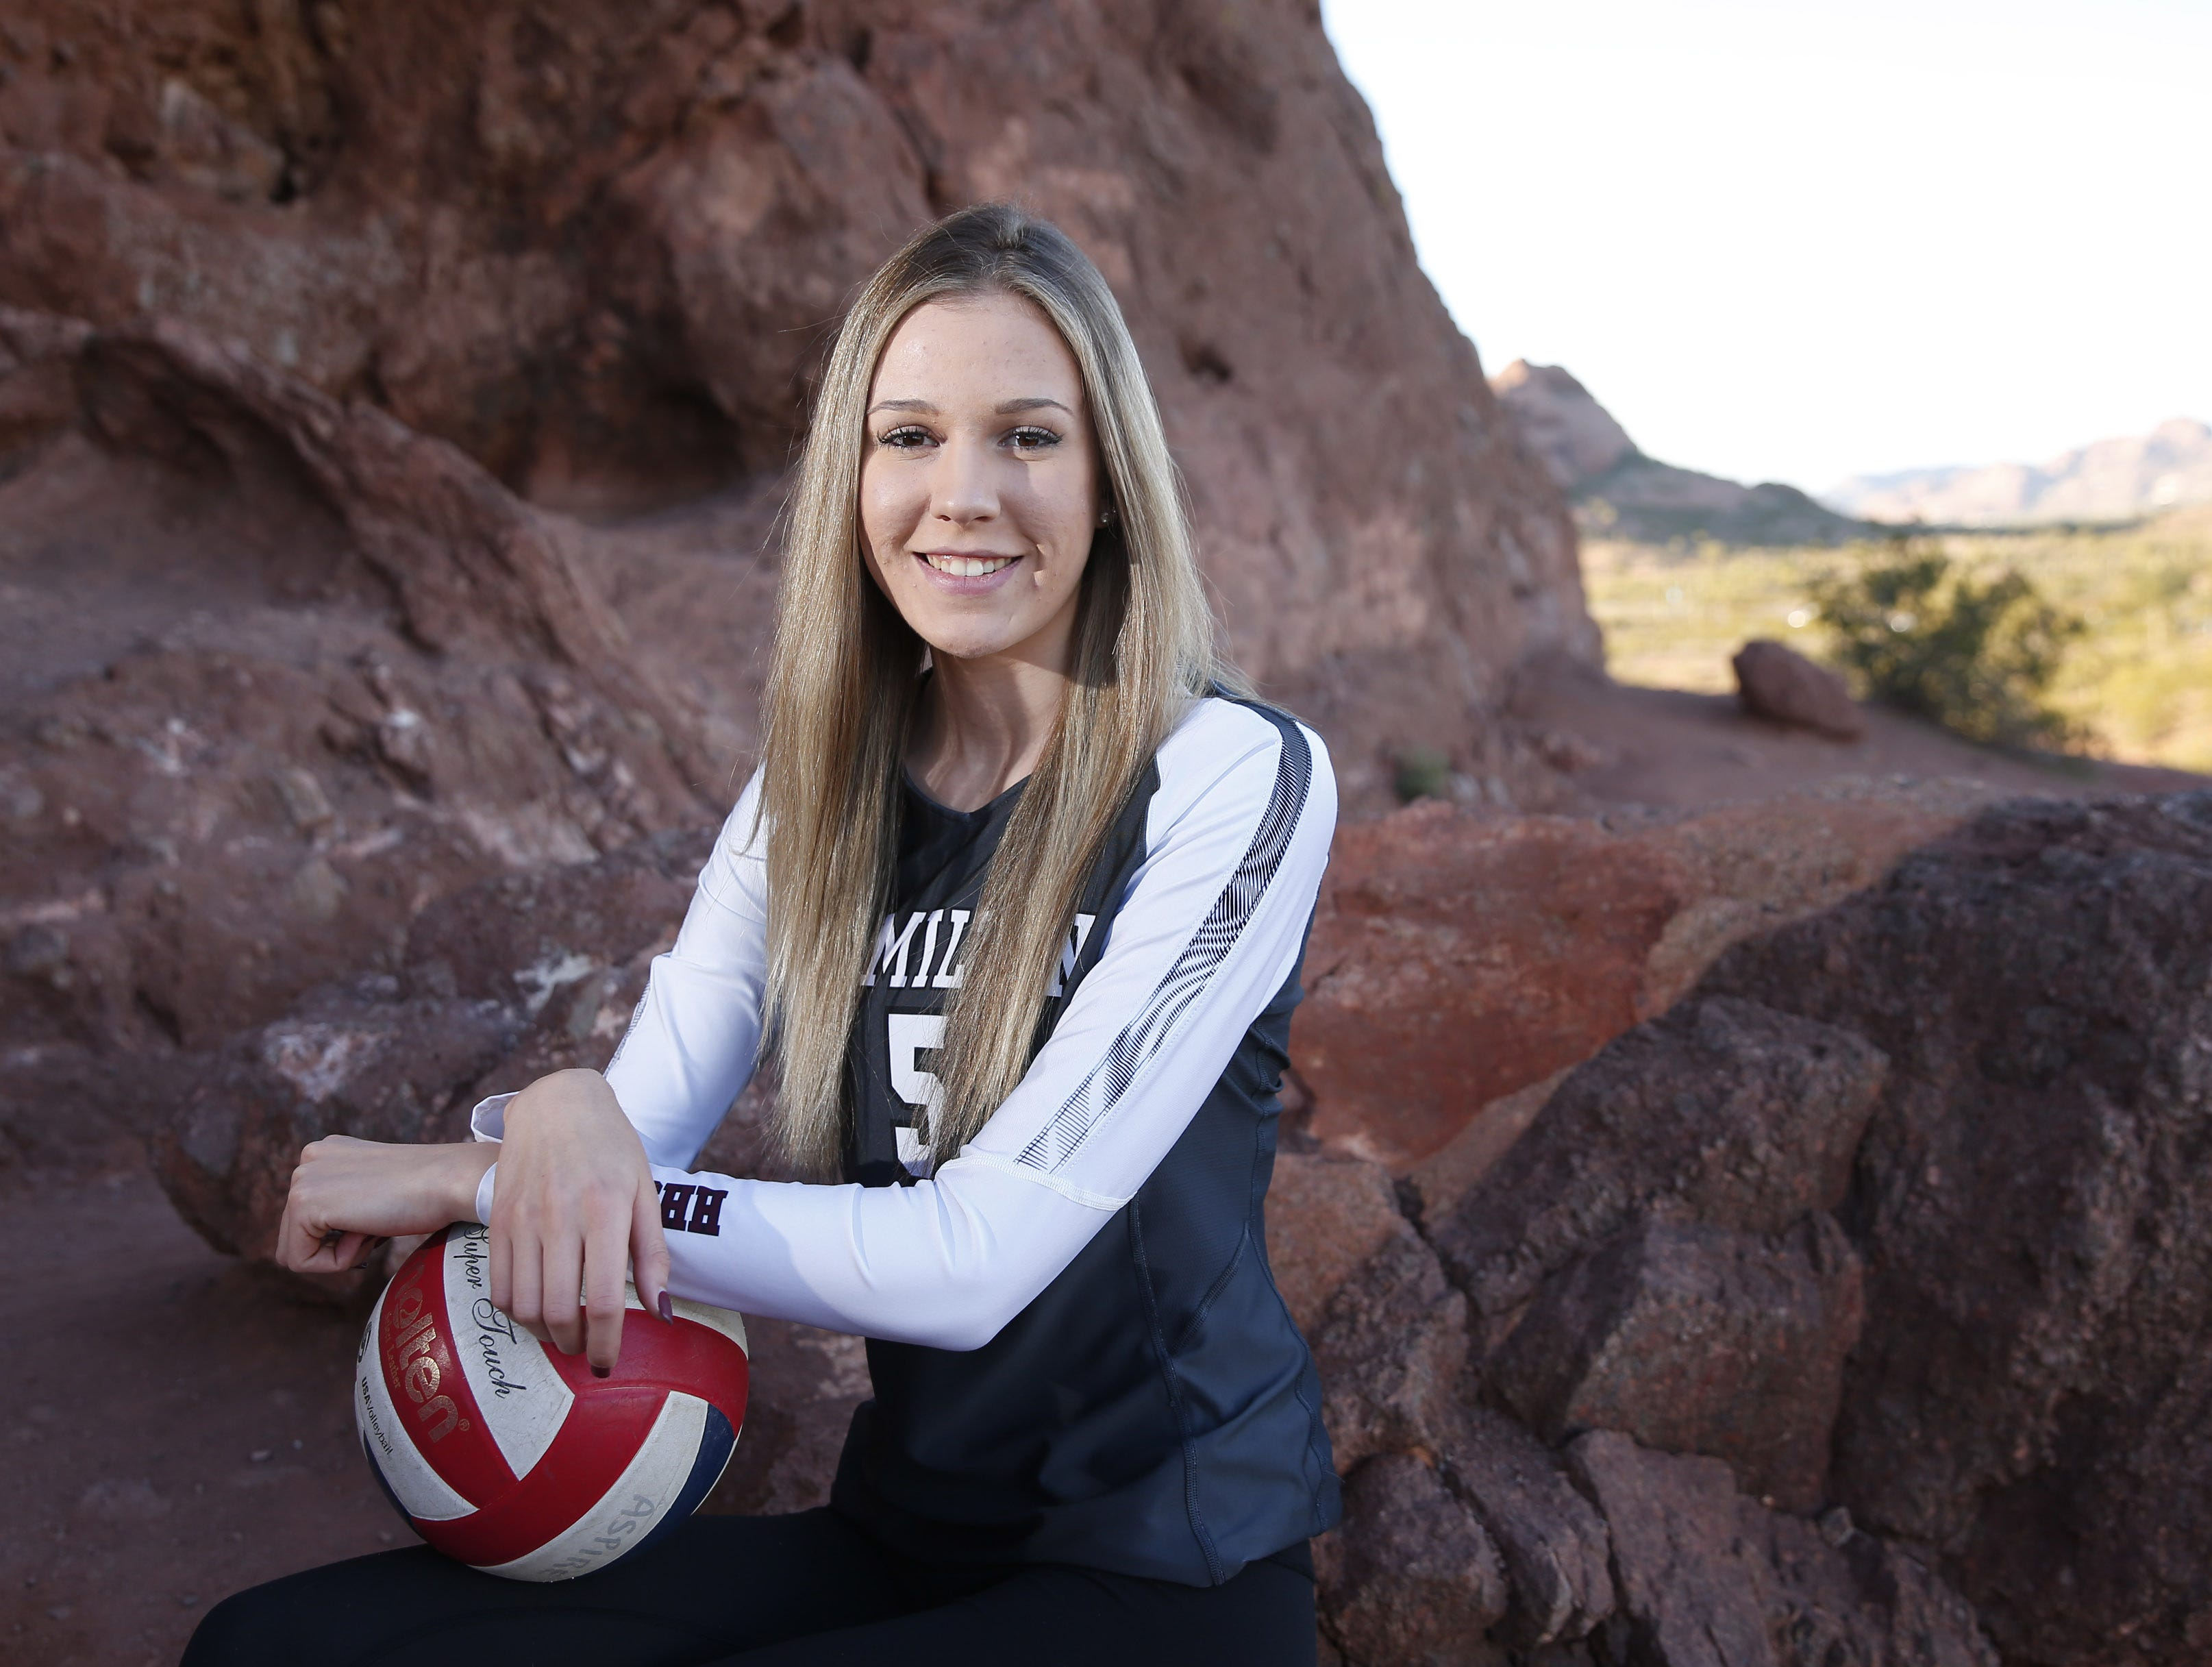 Taylor Jacobsen of Hamilton is a finalist for the azcentral Sports Awards Girls High School Volleyball of the Year. #azcsportsawards